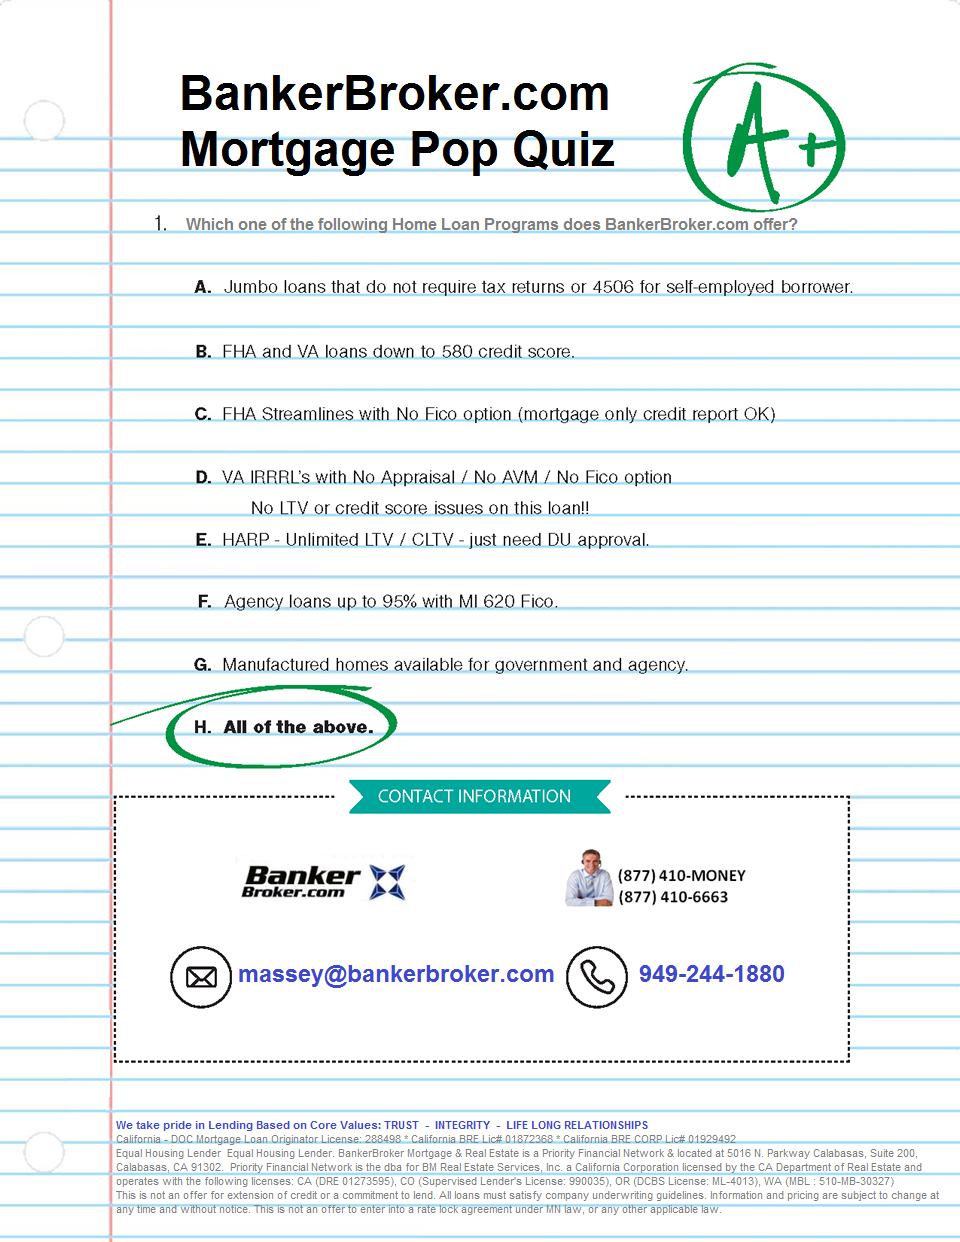 BankerBroker Mortgage Pop Quiz